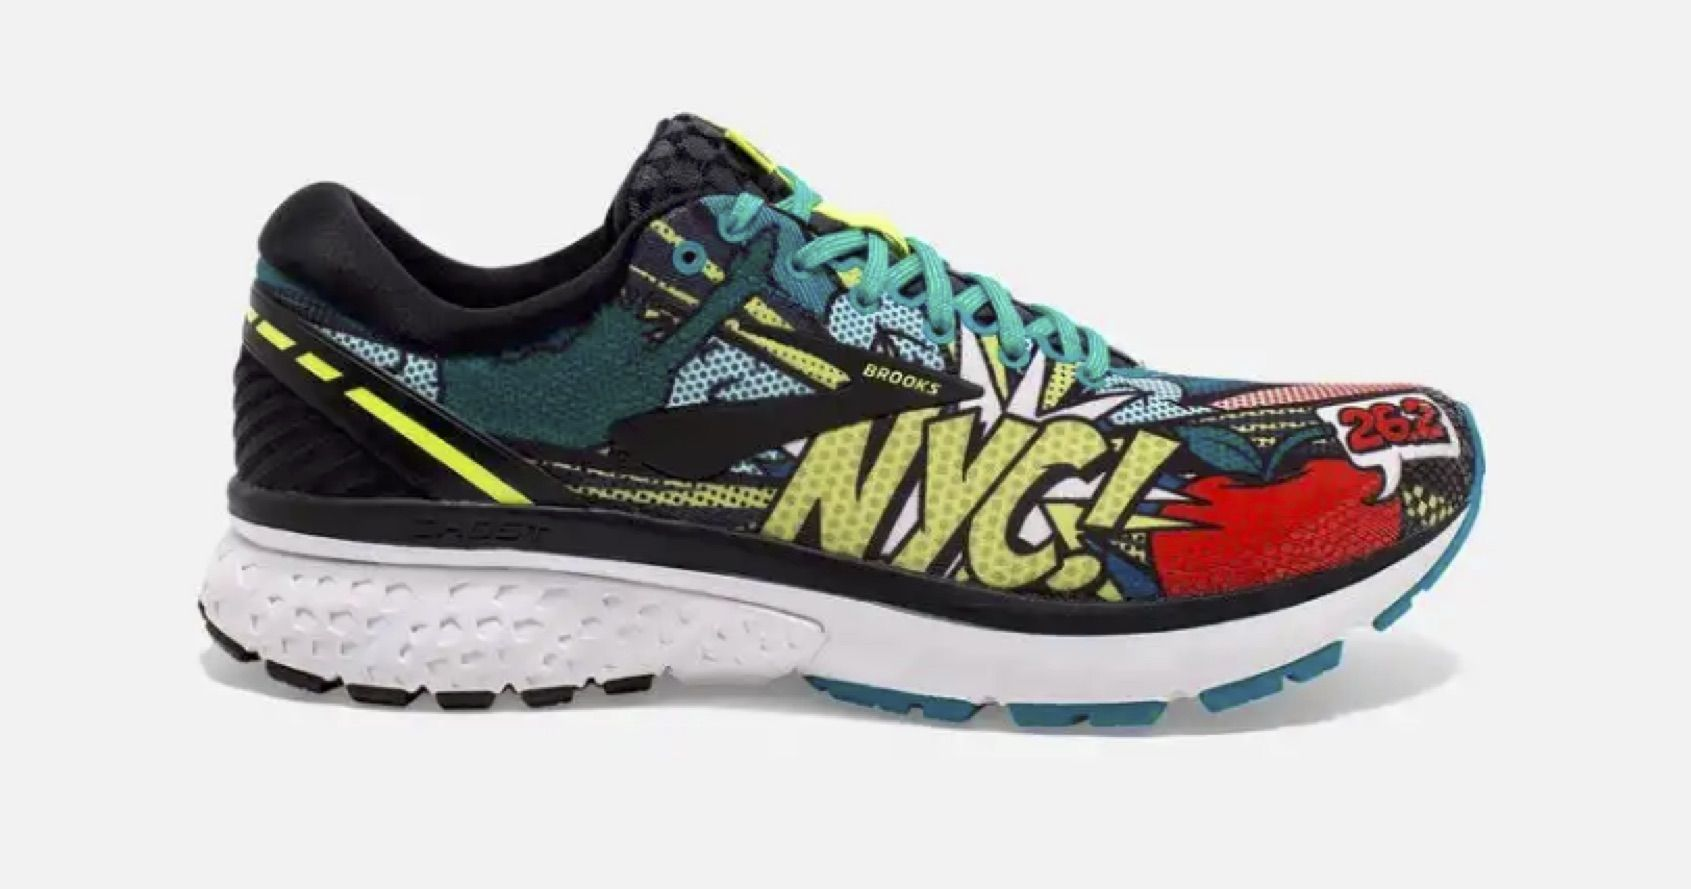 Sneakers 2018 Nyc Marathon Shoes Themed WYeEIbHD29